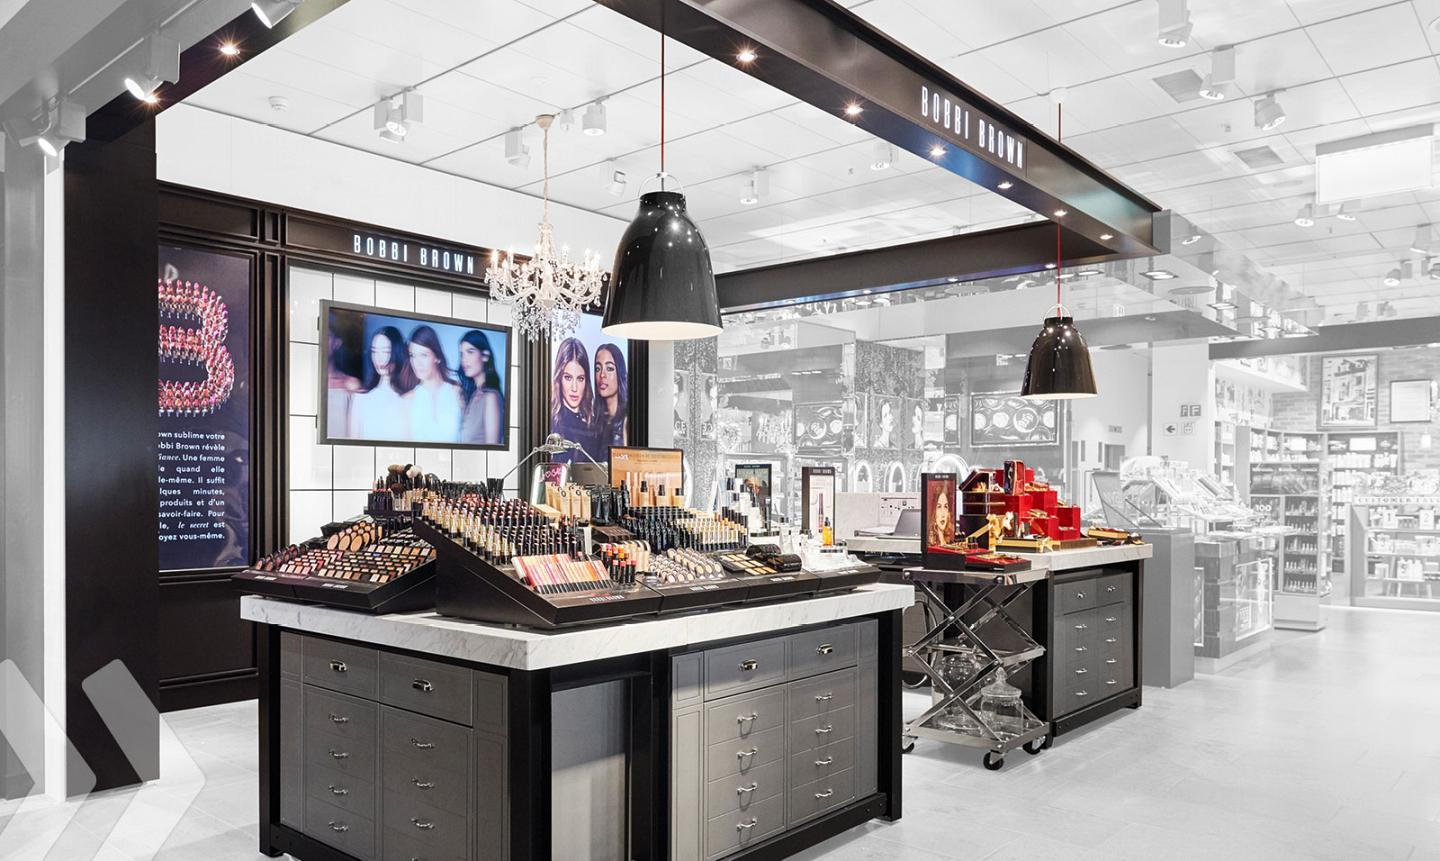 Shop Designs - Example Bobbi Brown